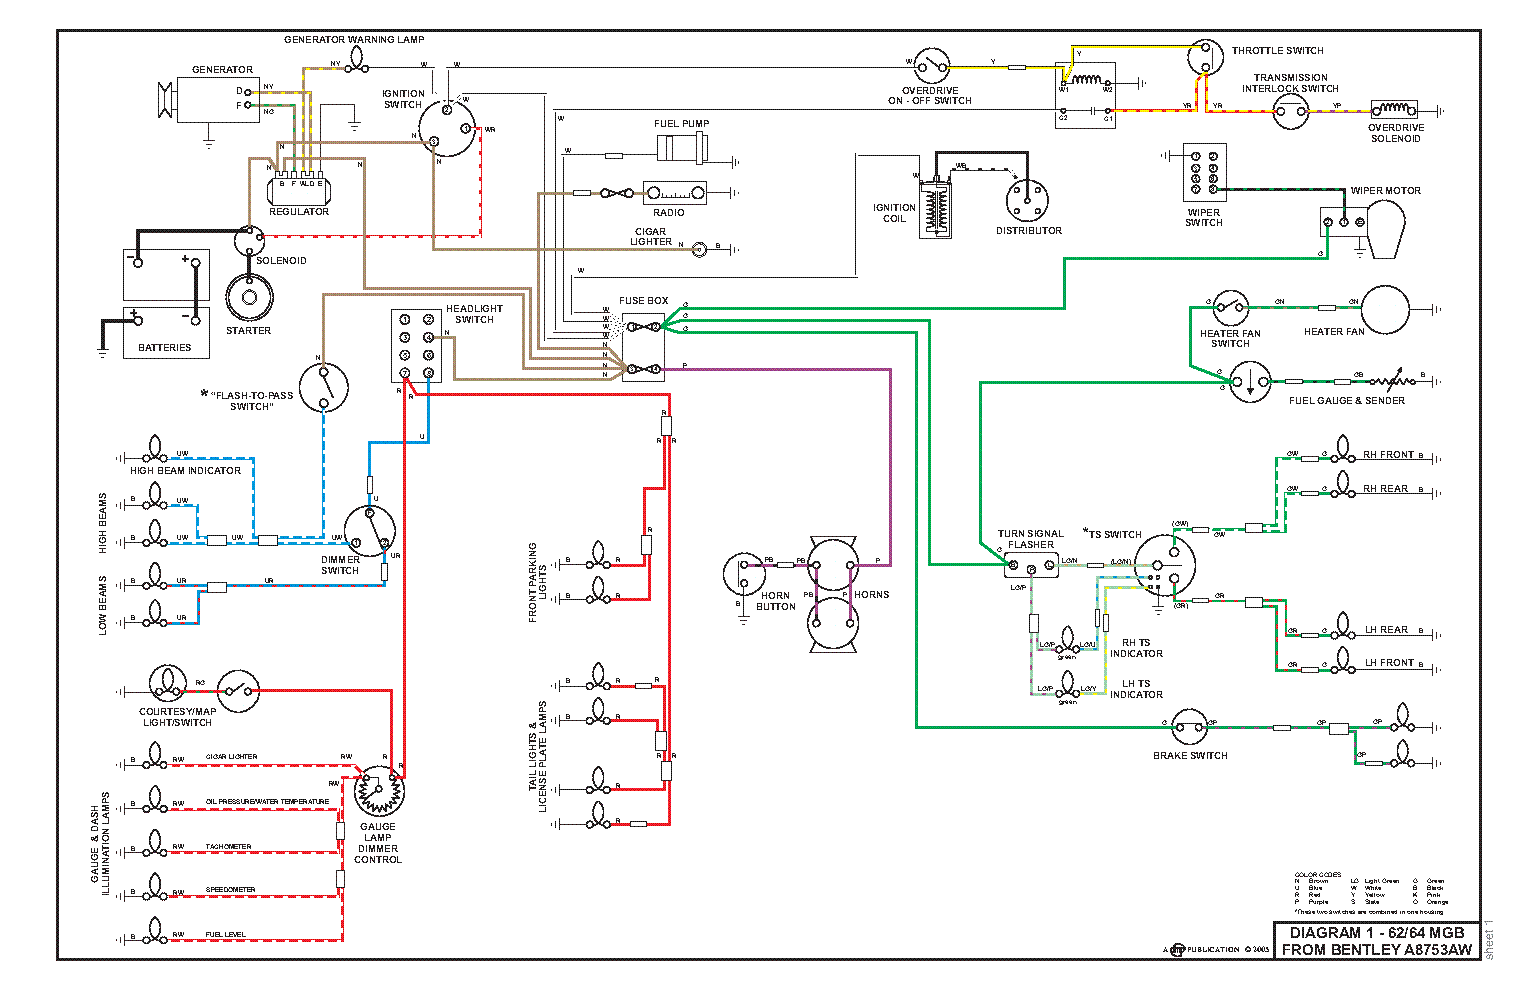 Example Of Wiring Diagram For House : Bentley mg b car wiring diagrams service manual download